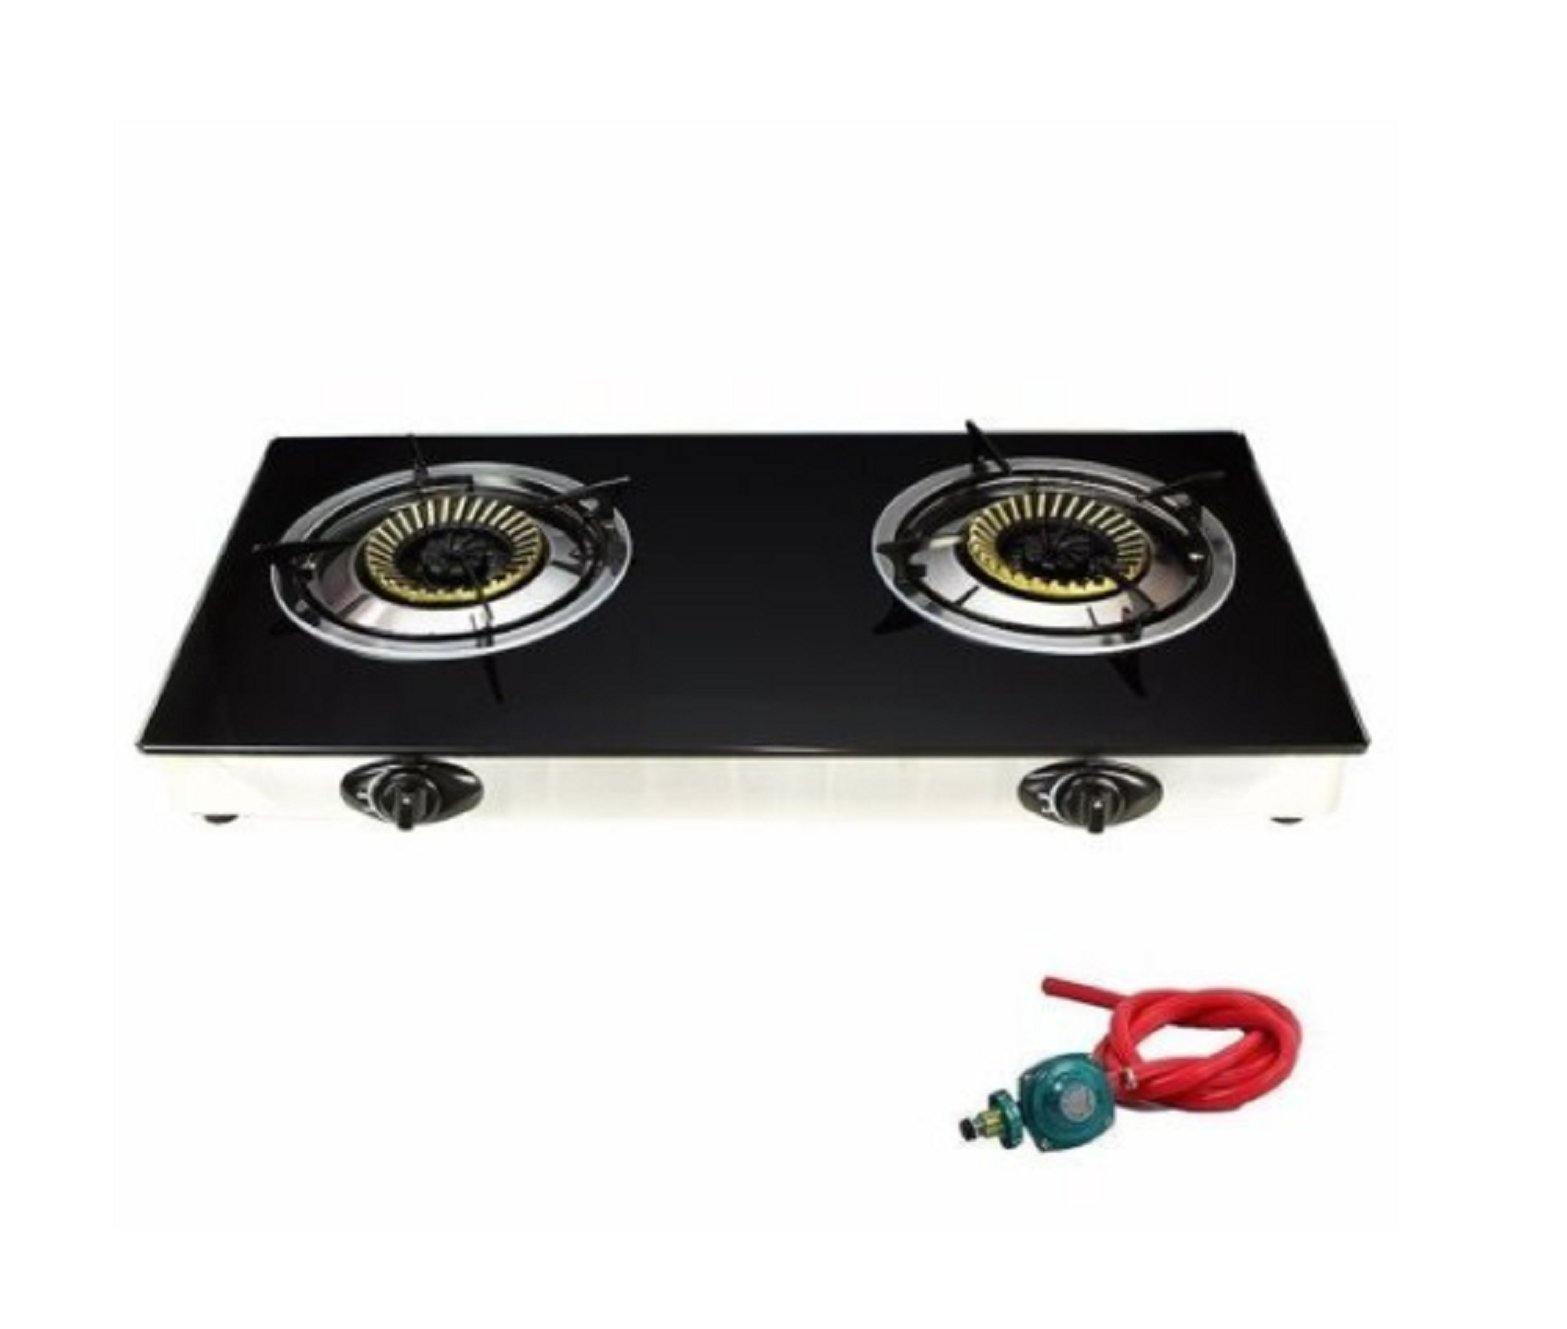 USA Premium Store 2 Burner Stove Gas Propane Range Tempered Ignition Camping Outdoor Glass Cooktop by USA Premium Store